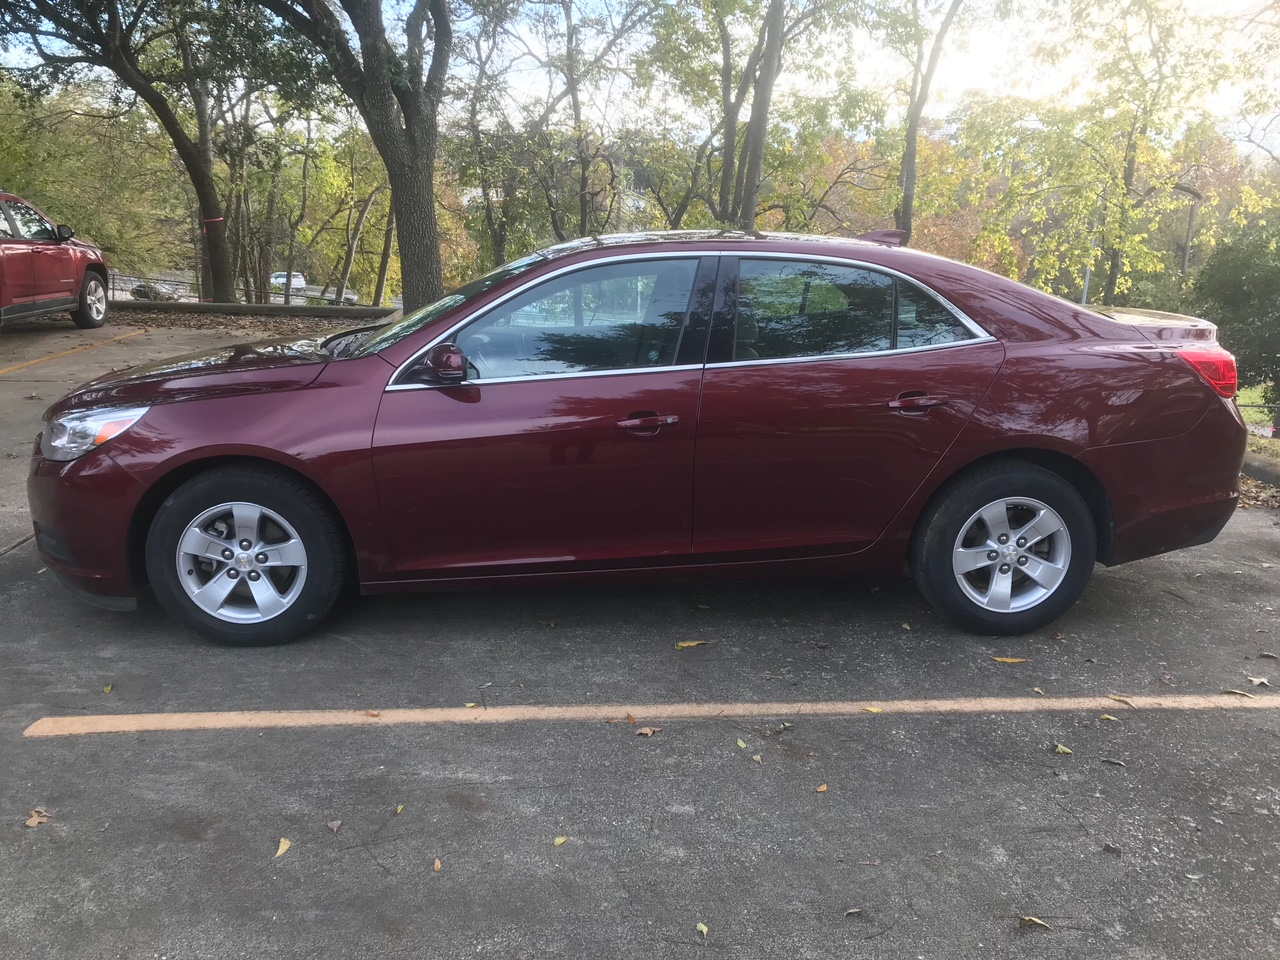 Chevy_malibu_2016_red (4)